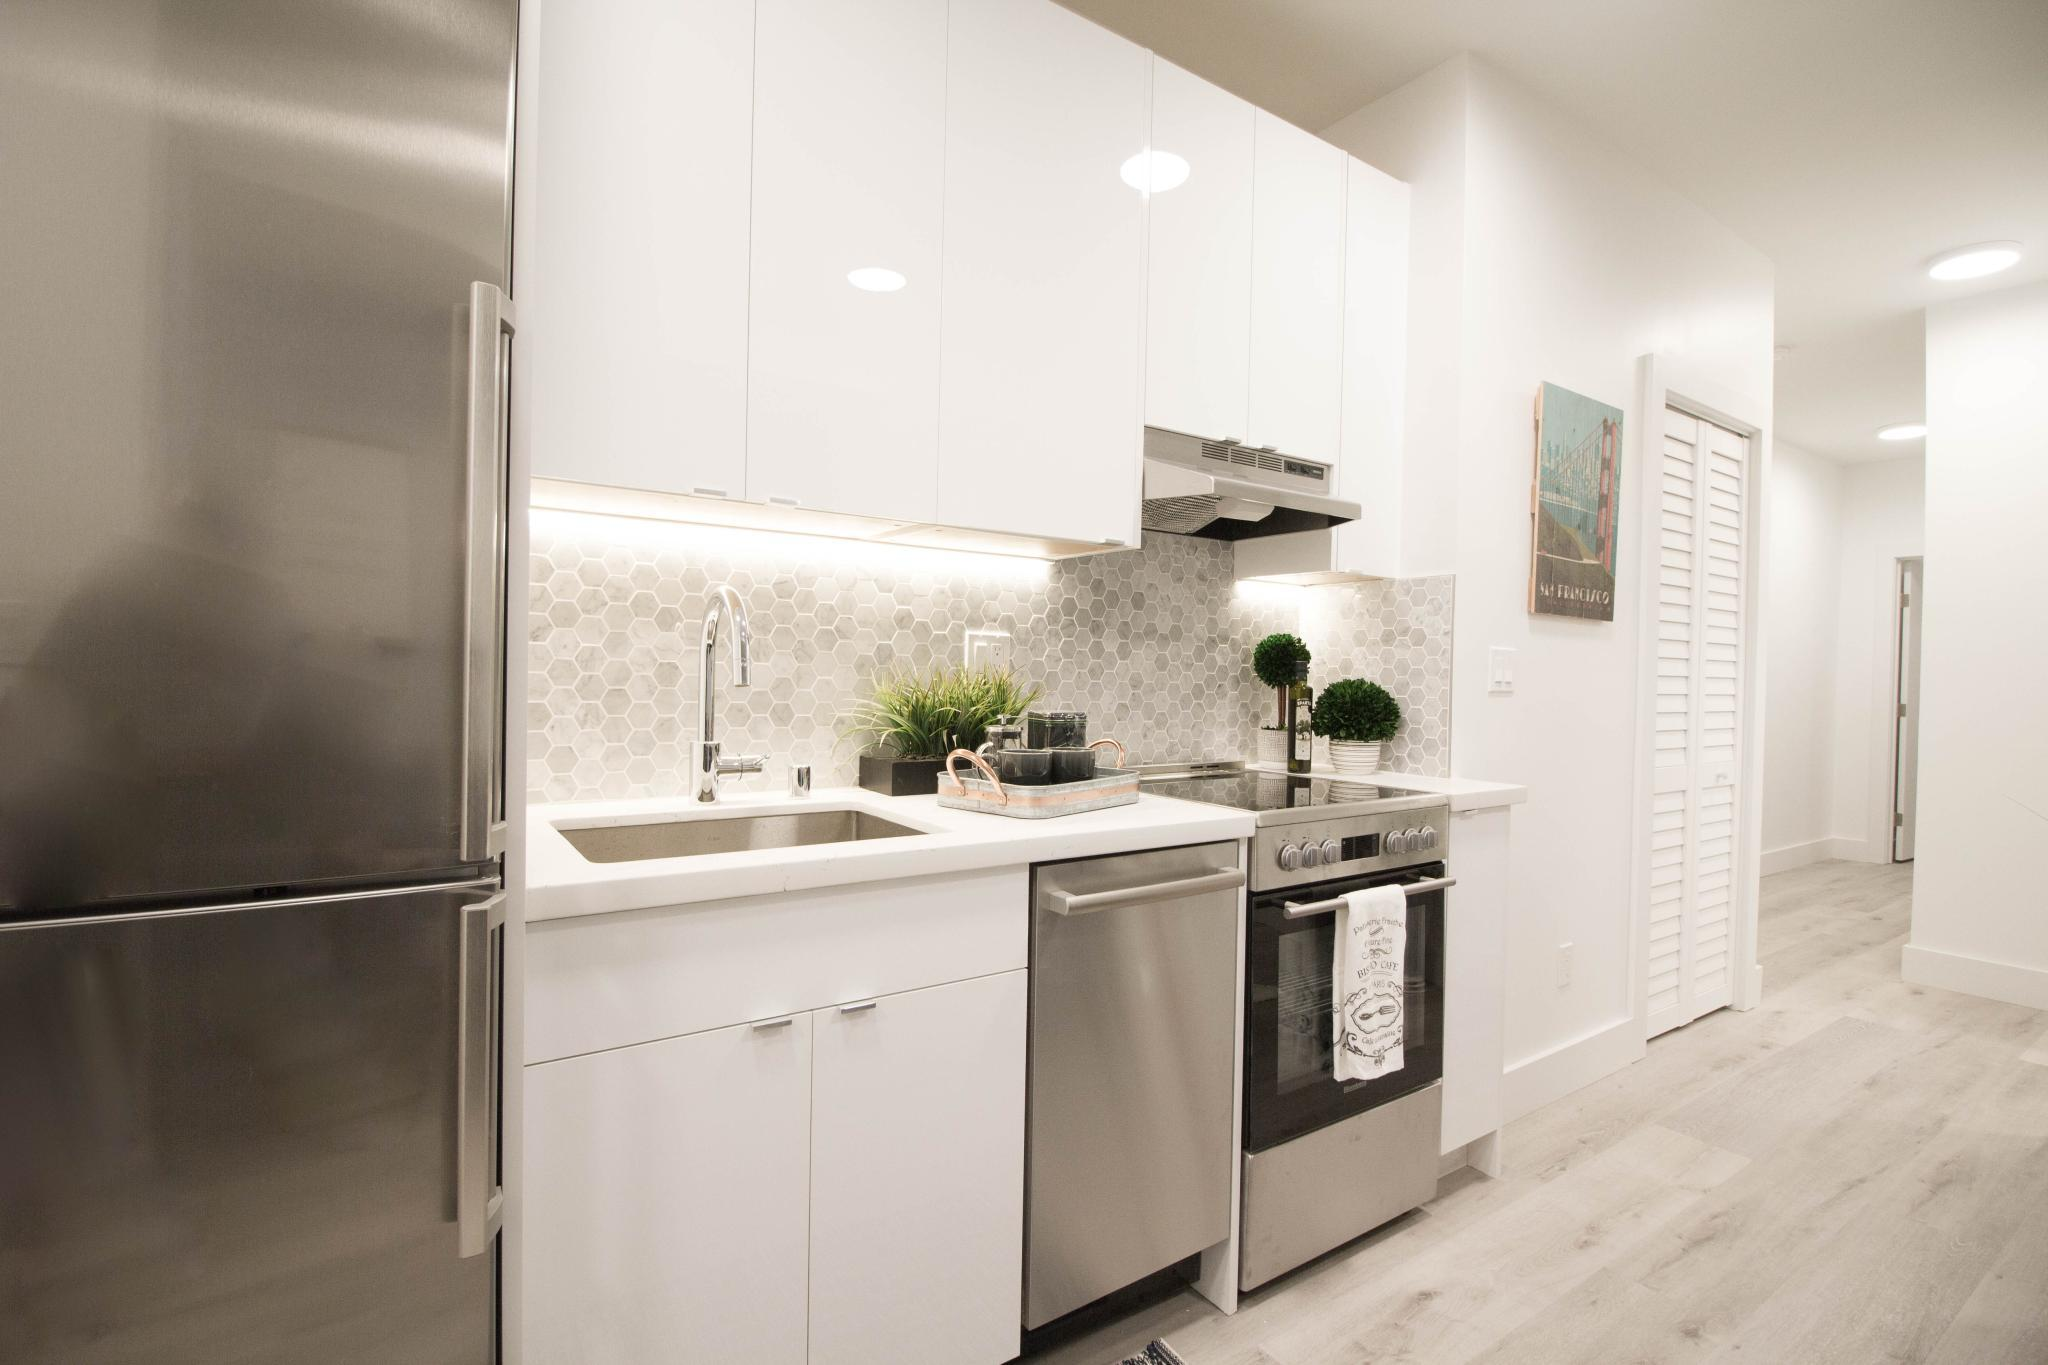 2835 Van Ness Ave #7 For Rent - San Francisco, CA | Trulia